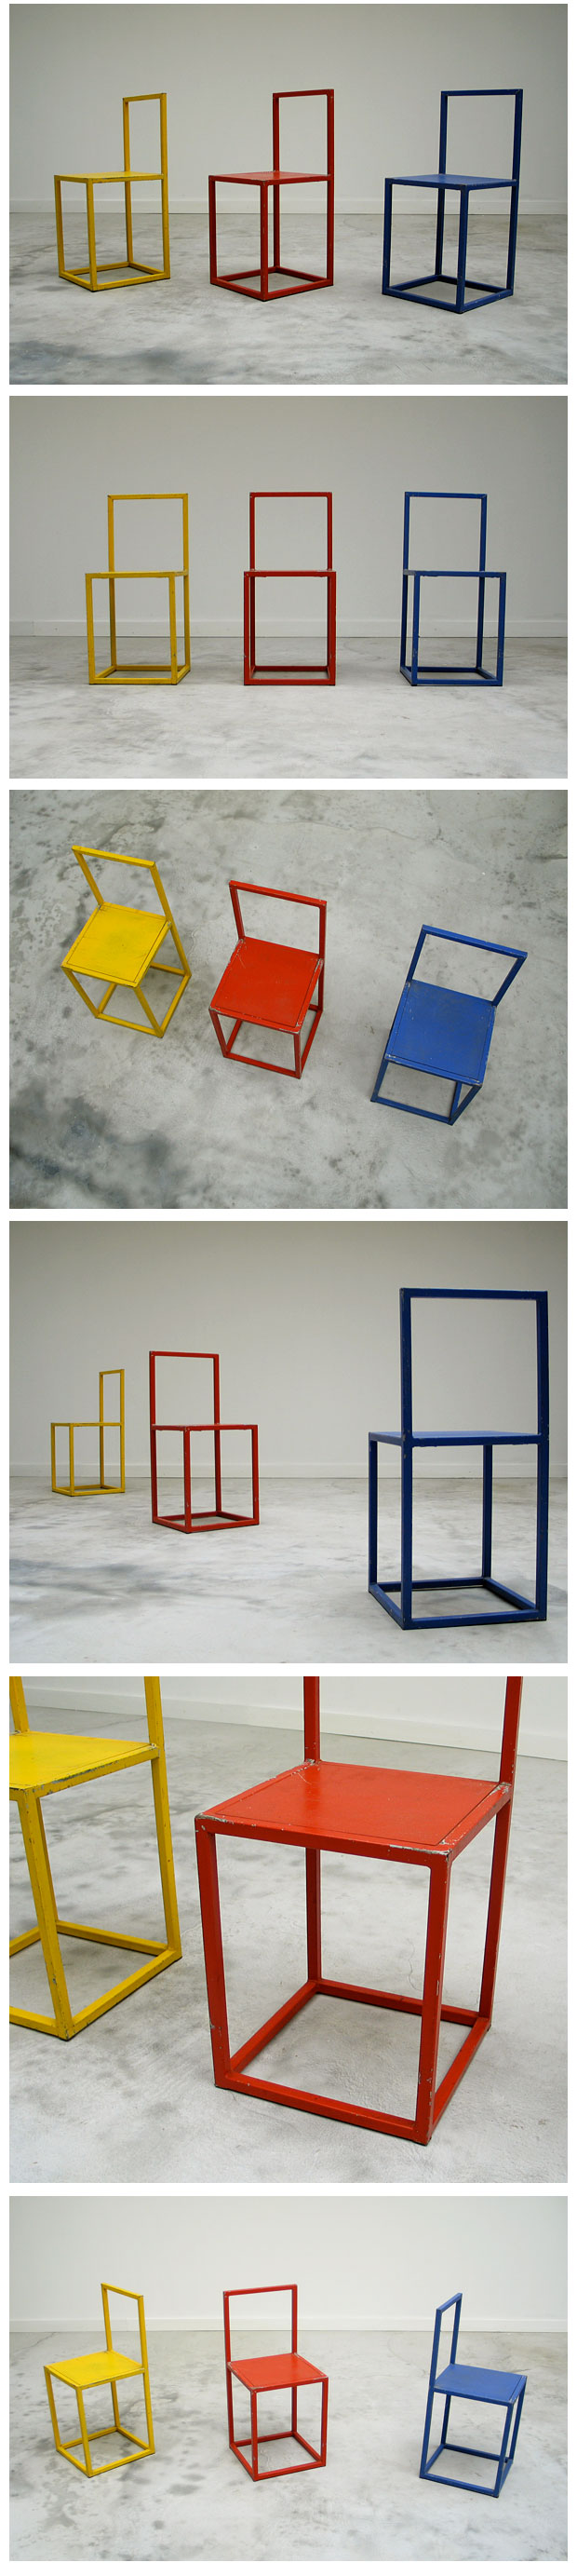 Uncategorized hand painted childrens table and chairs foter - 3 Cubistic Chairs Donald Judd